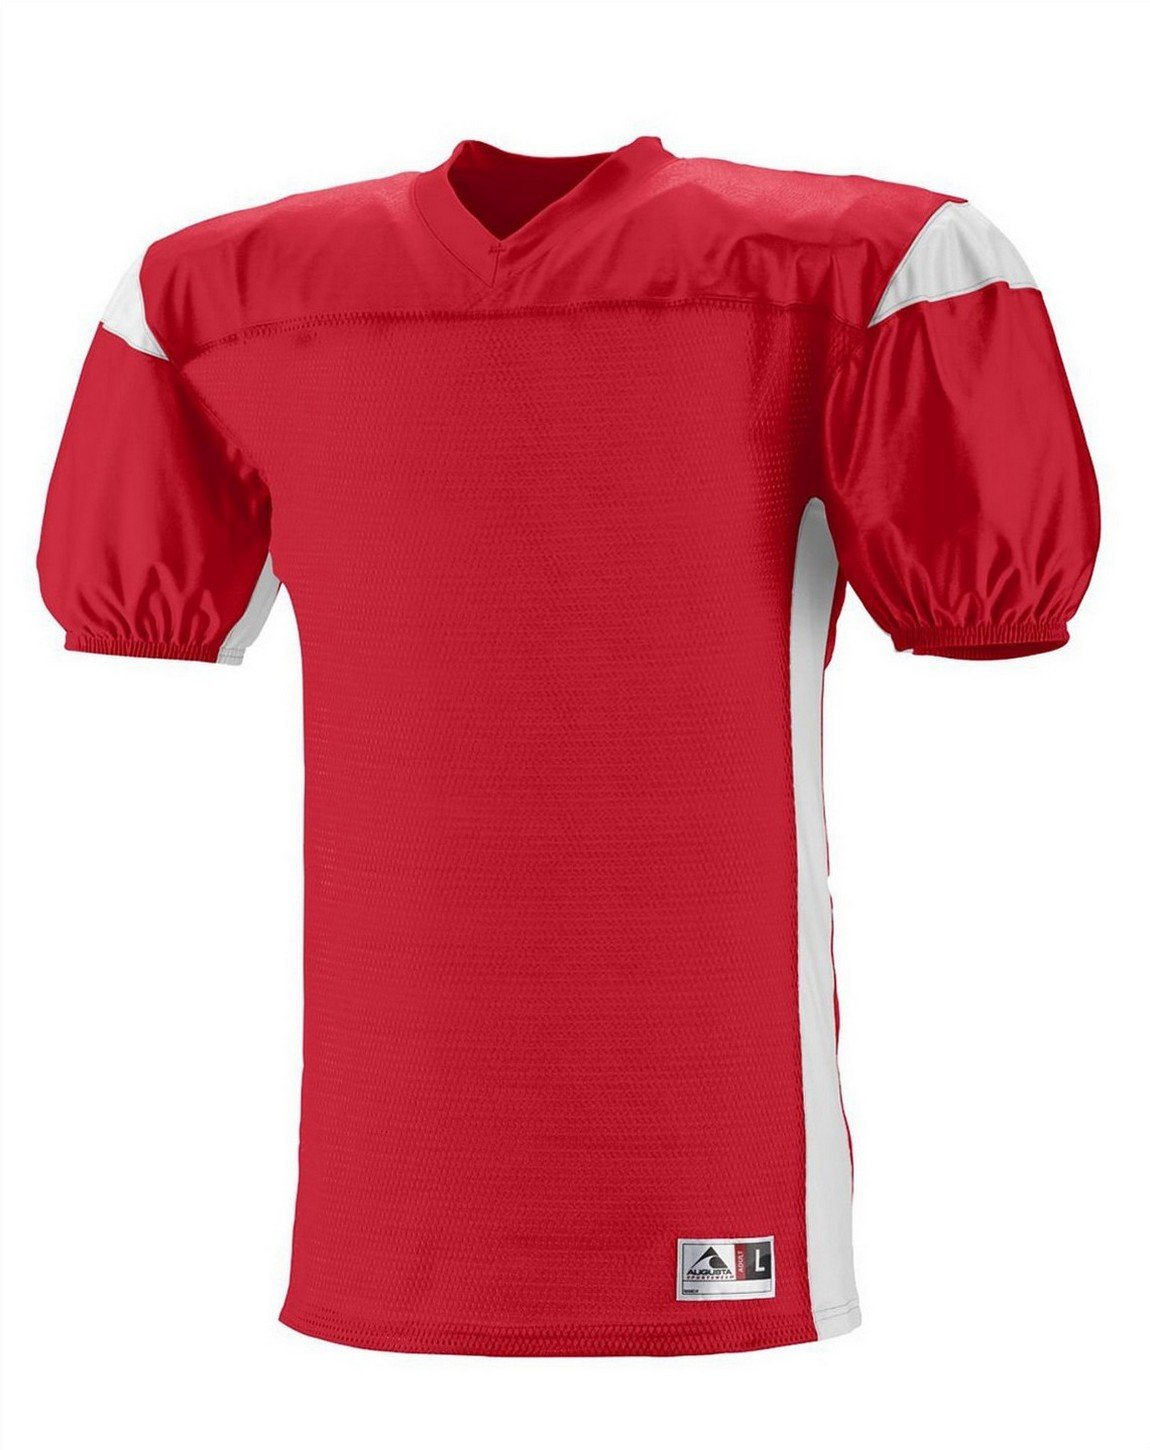 9521 AG YTH DOMINATOR MESH JERSEY RED/ WHITE S